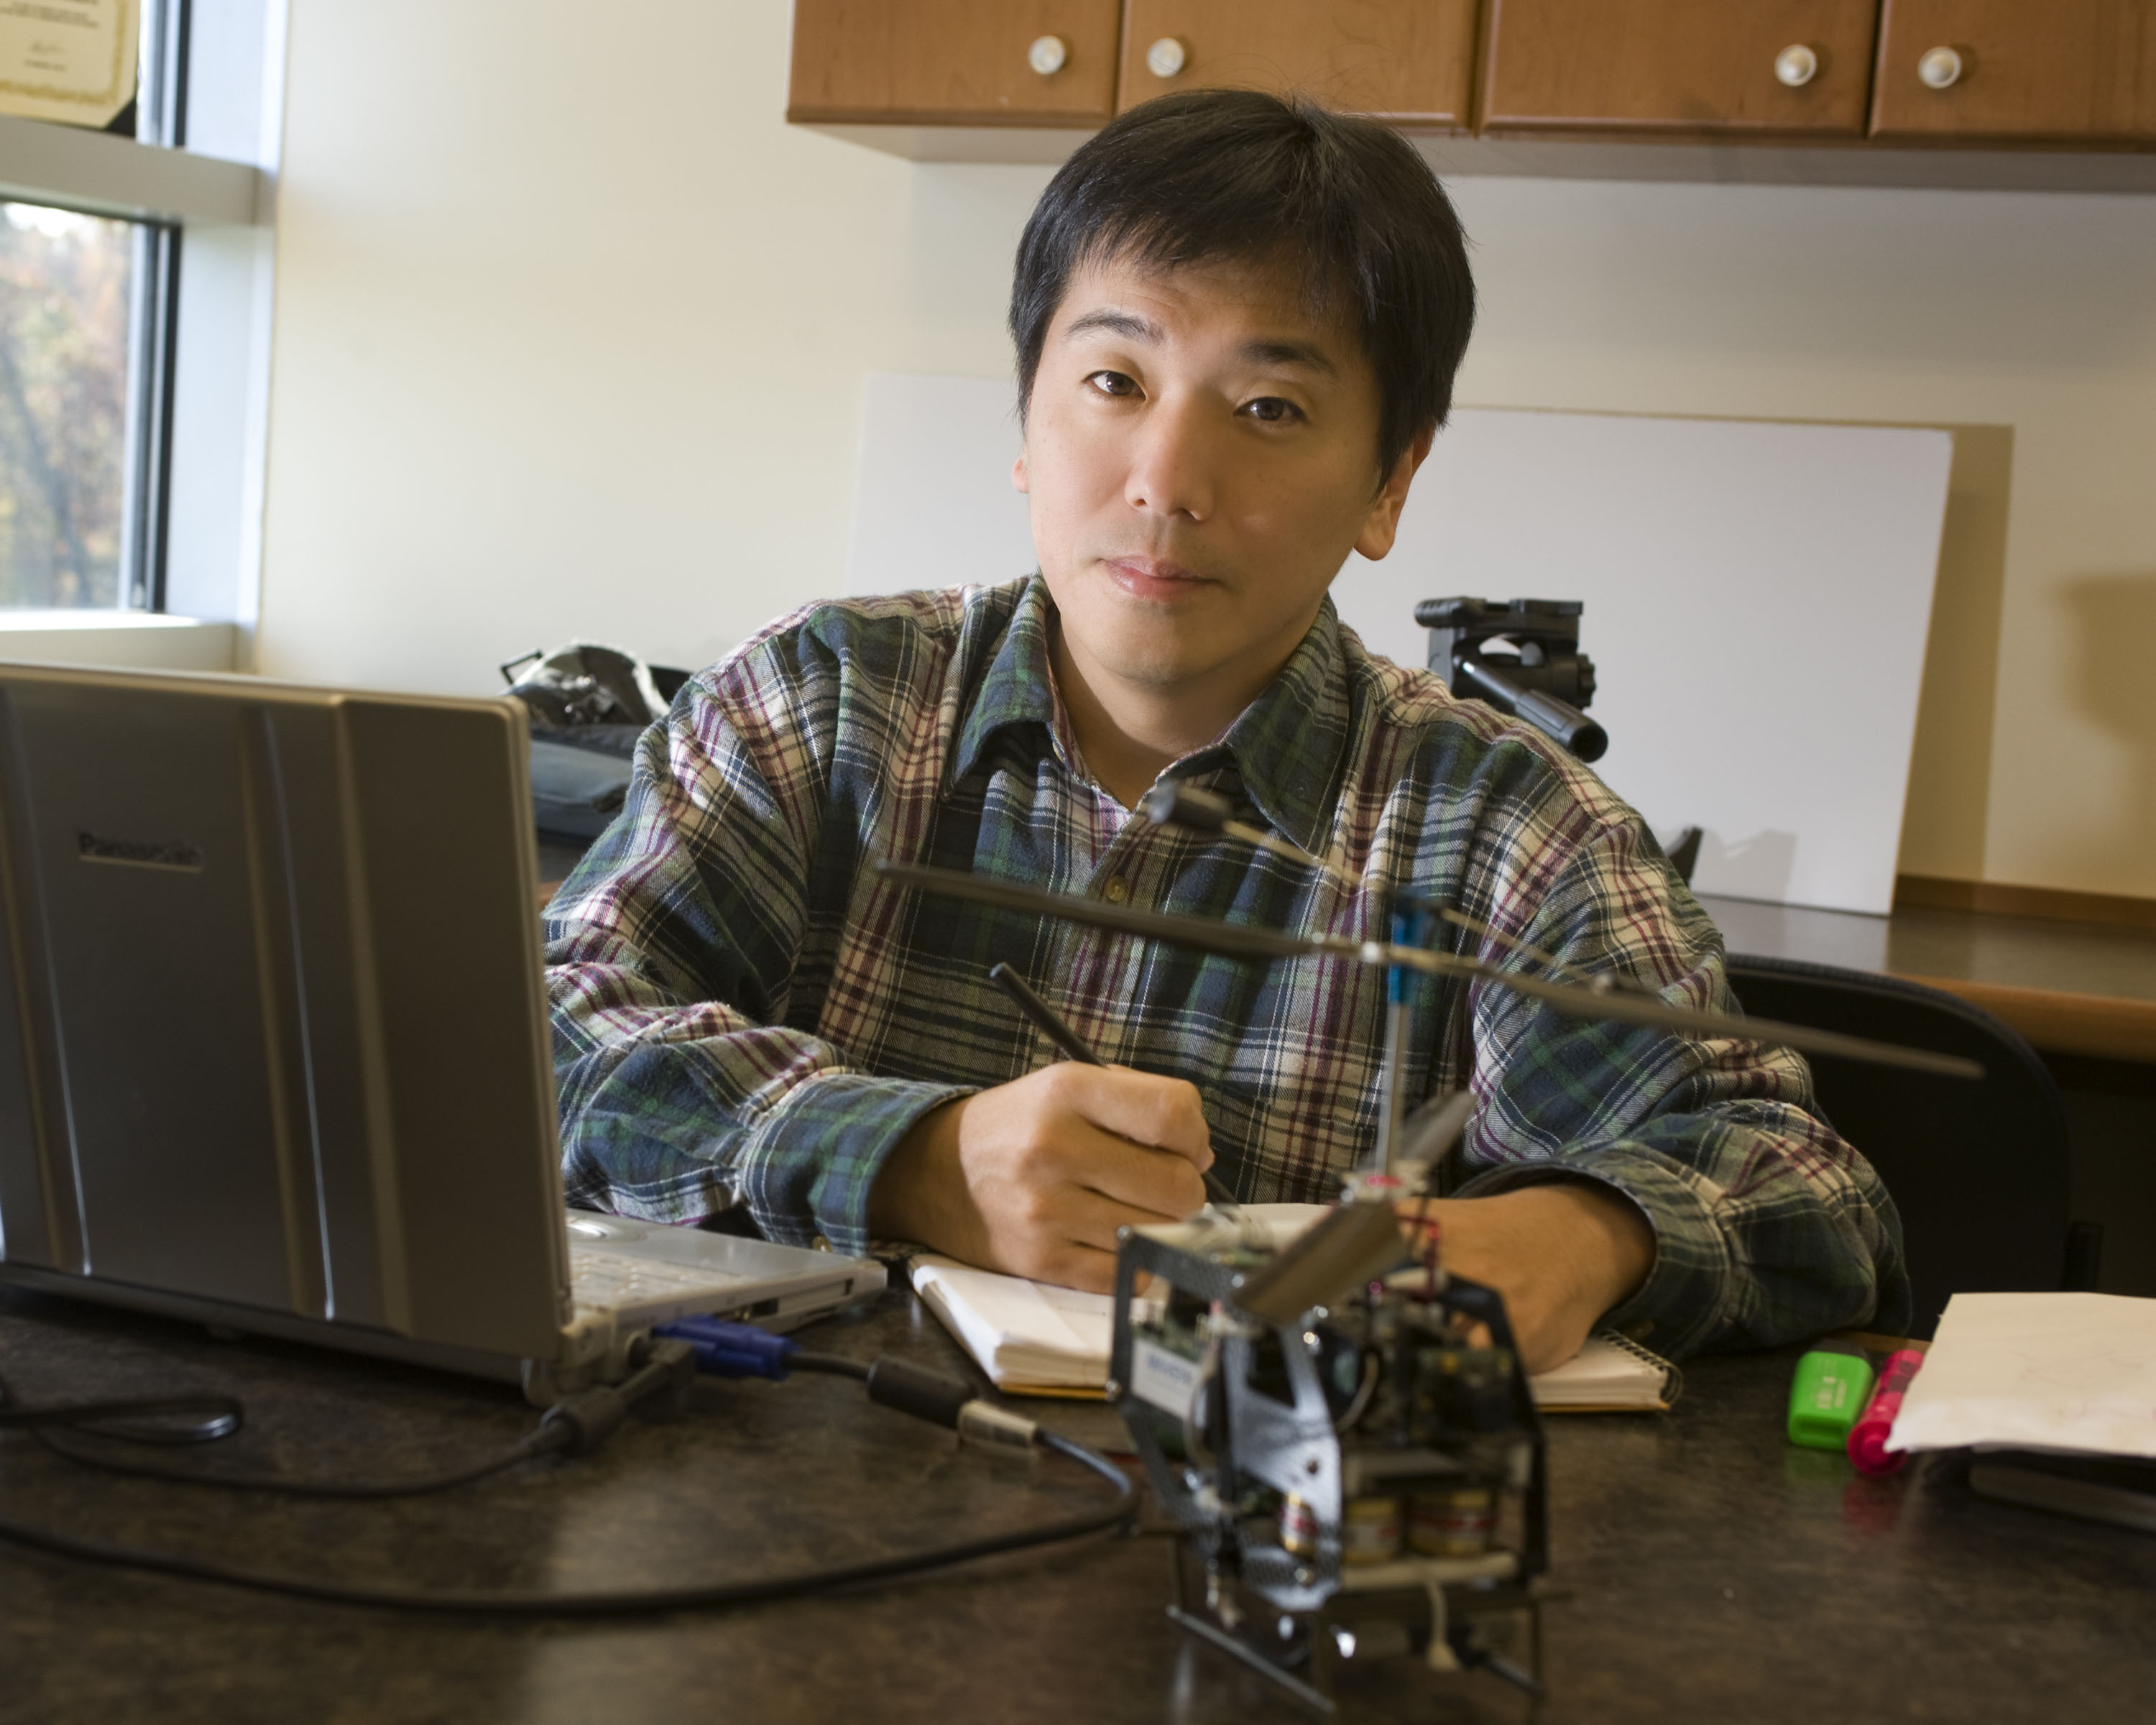 Tomonari Furukawa is leading a team of faculty, graduate students, and undergraduate students from Virginia Tech's Virginia Center for Autonomous Systems in building a team battle-ready robots as part of an international war games challenge.